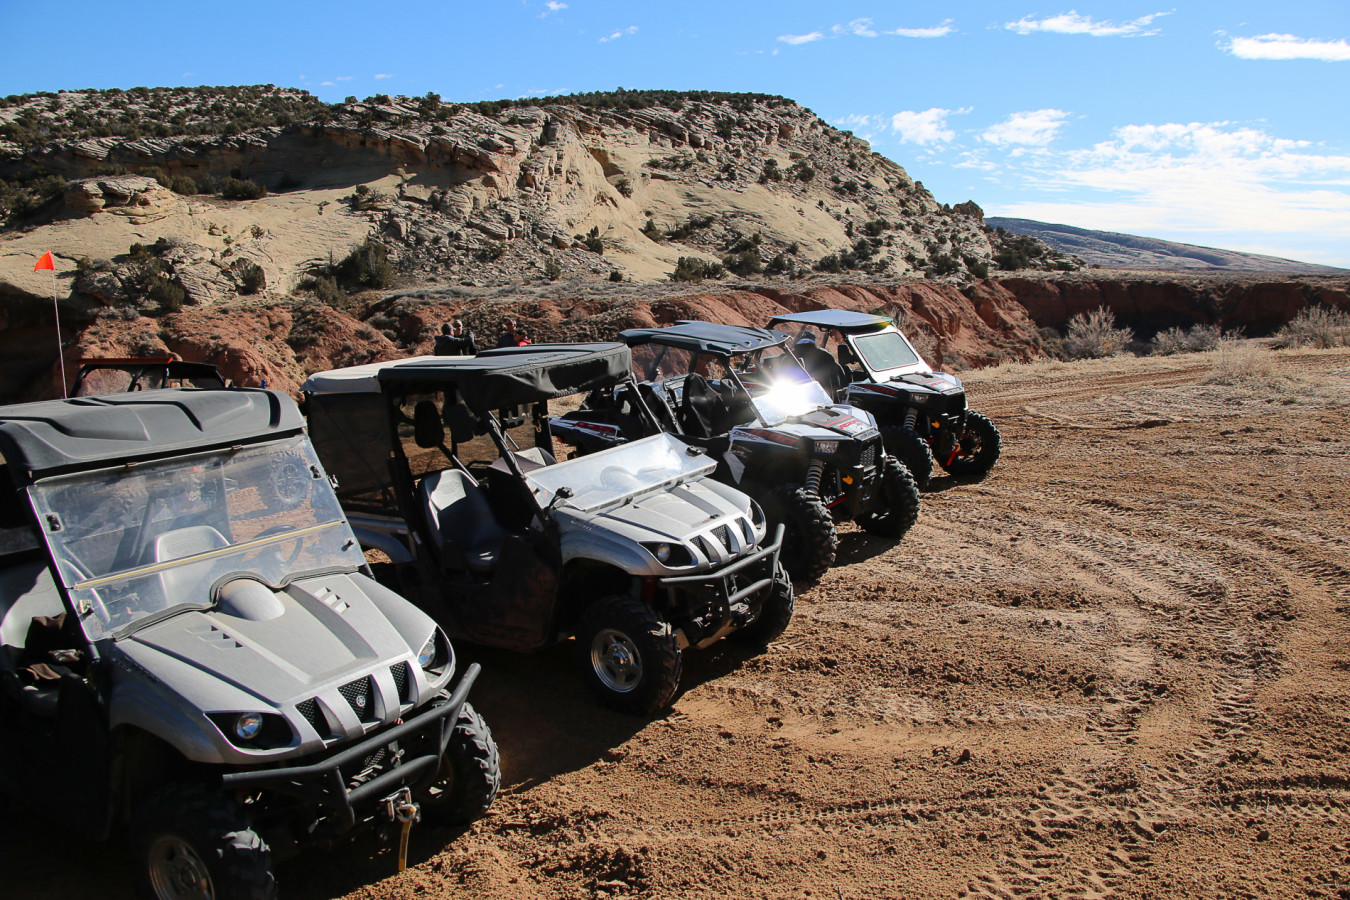 Off road side by sides